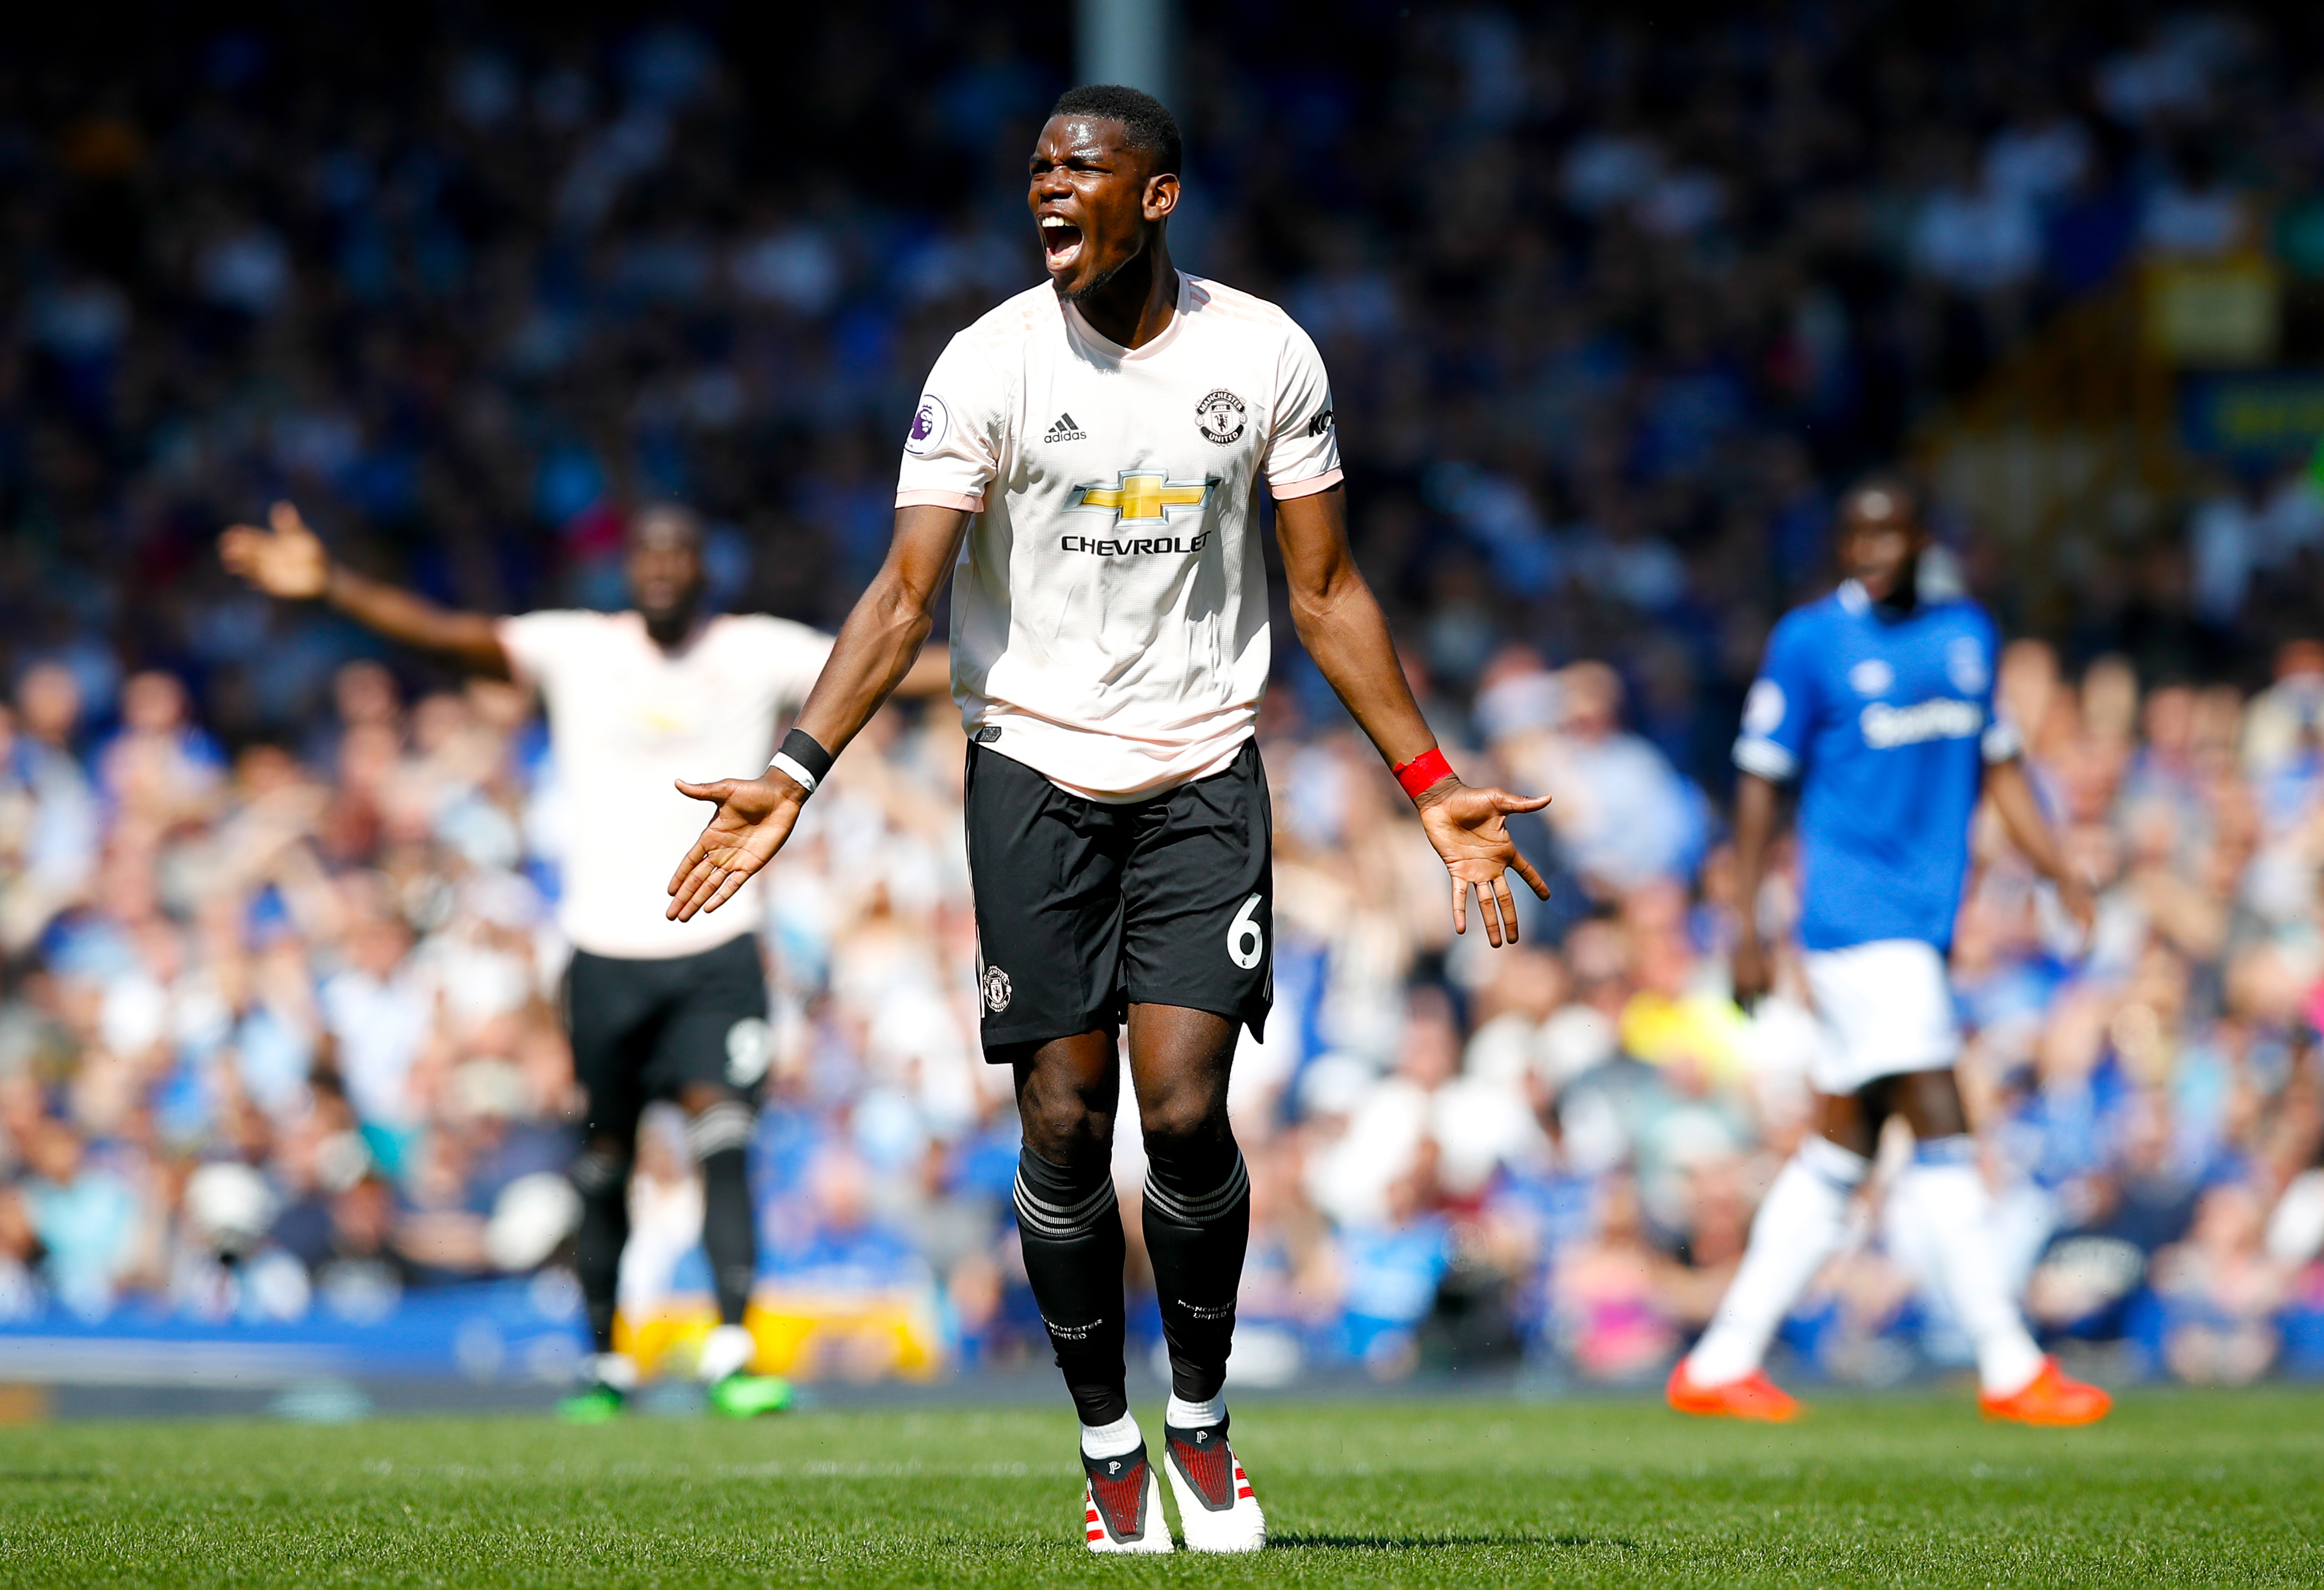 Pogba cuts a frustrated figure at Goodison Park. Image: PA Images